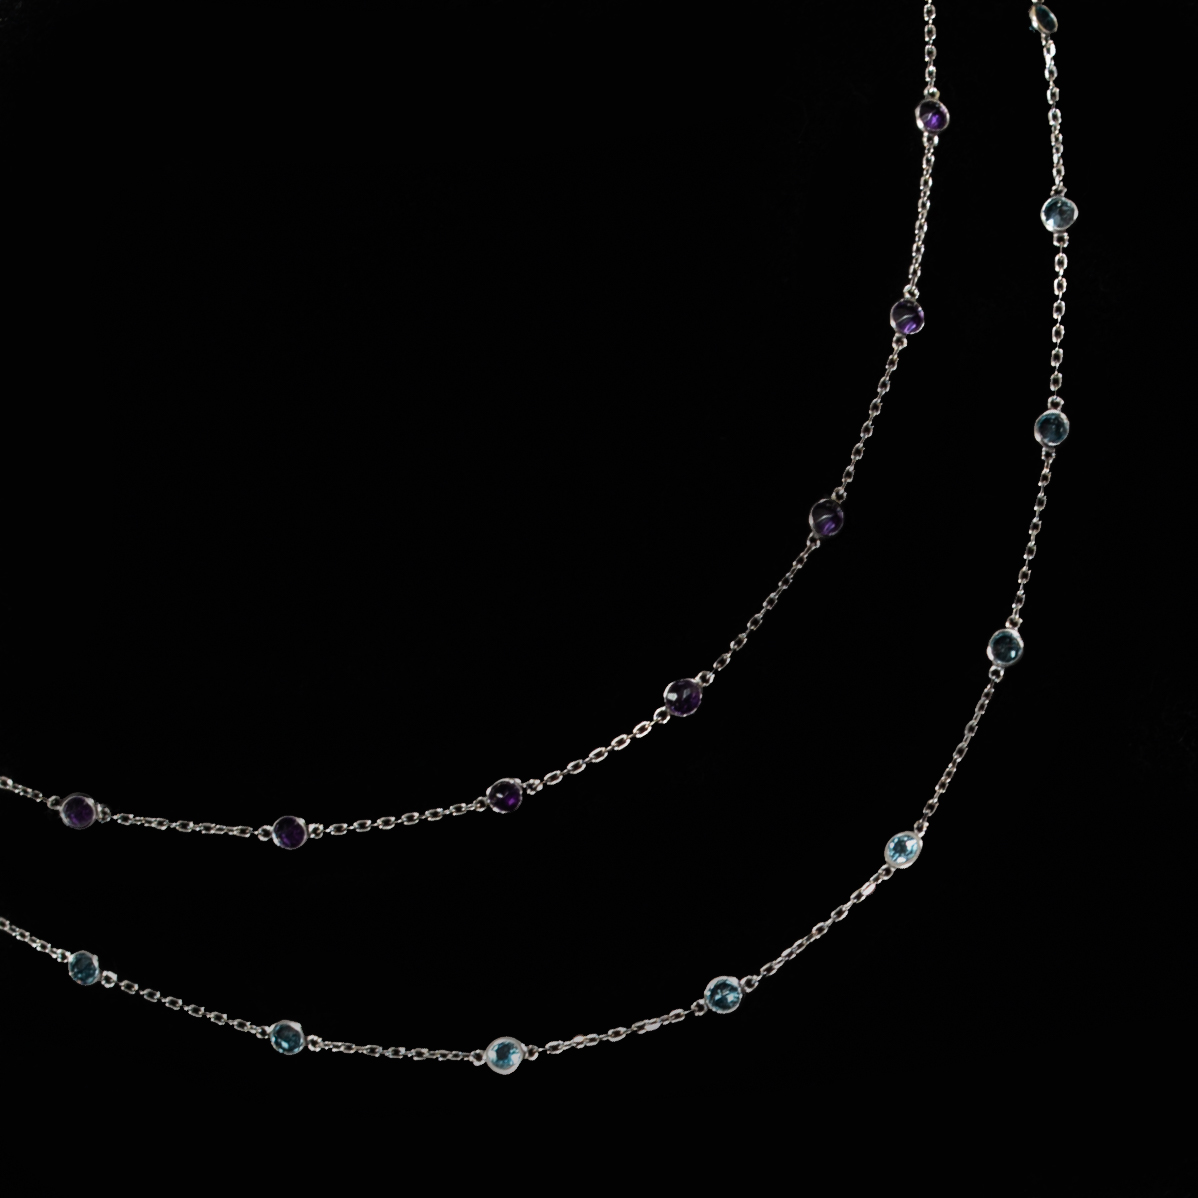 100 special August 19 Amethyst or Blue Topaz sterling station necklace  .jpg